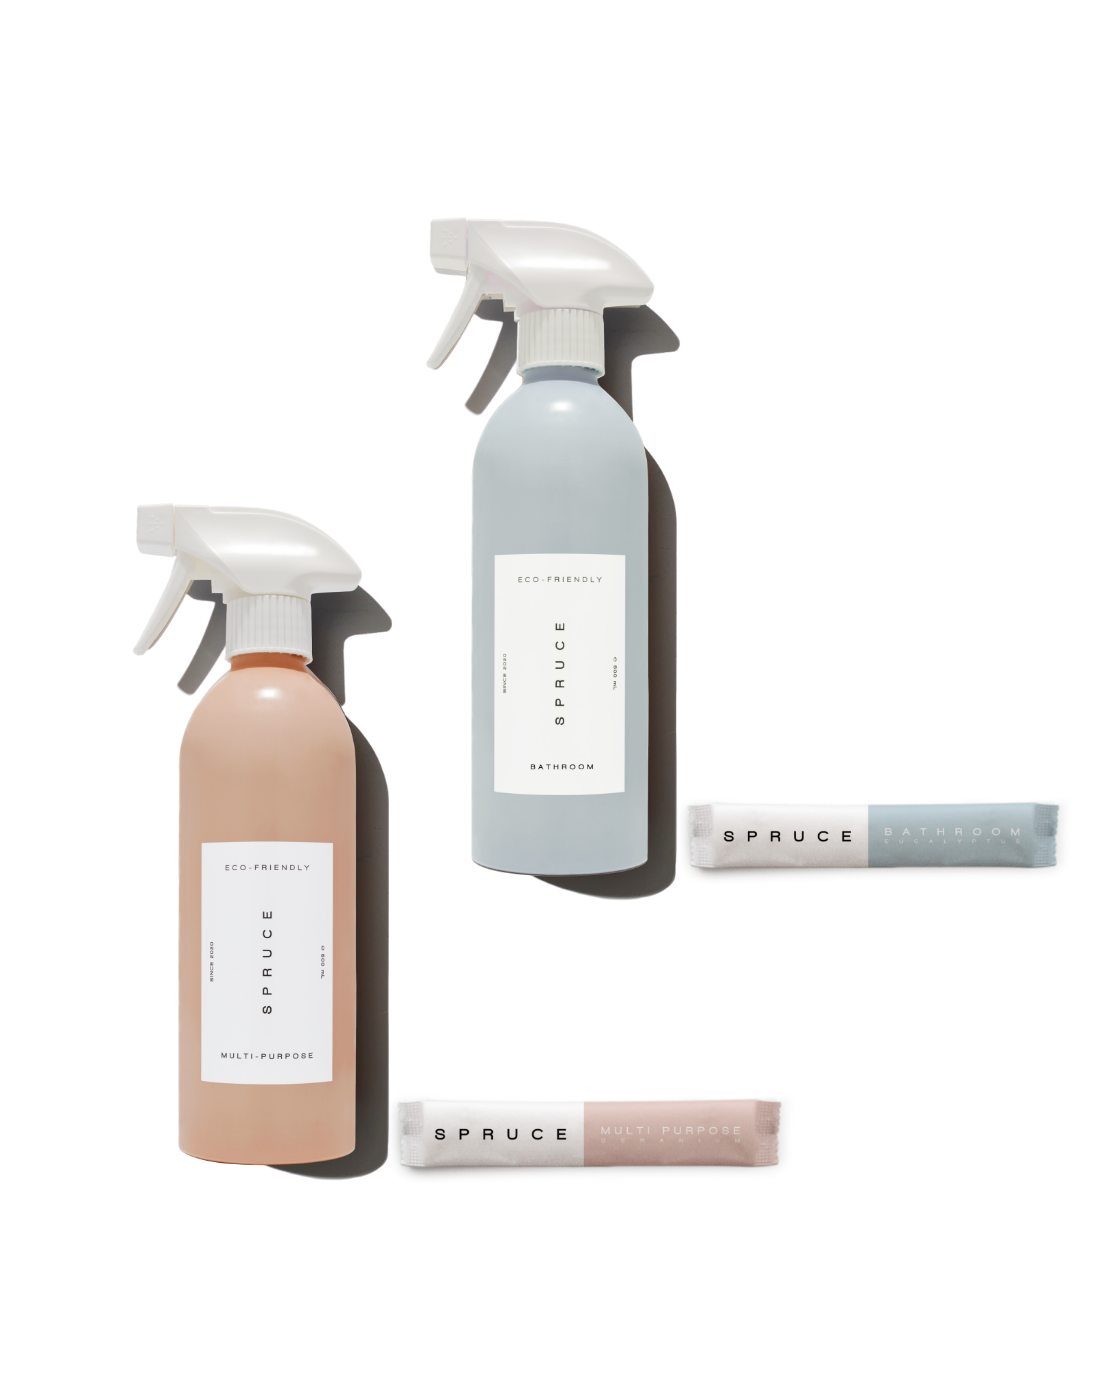 Spruce refillable, plastic free cleaning products